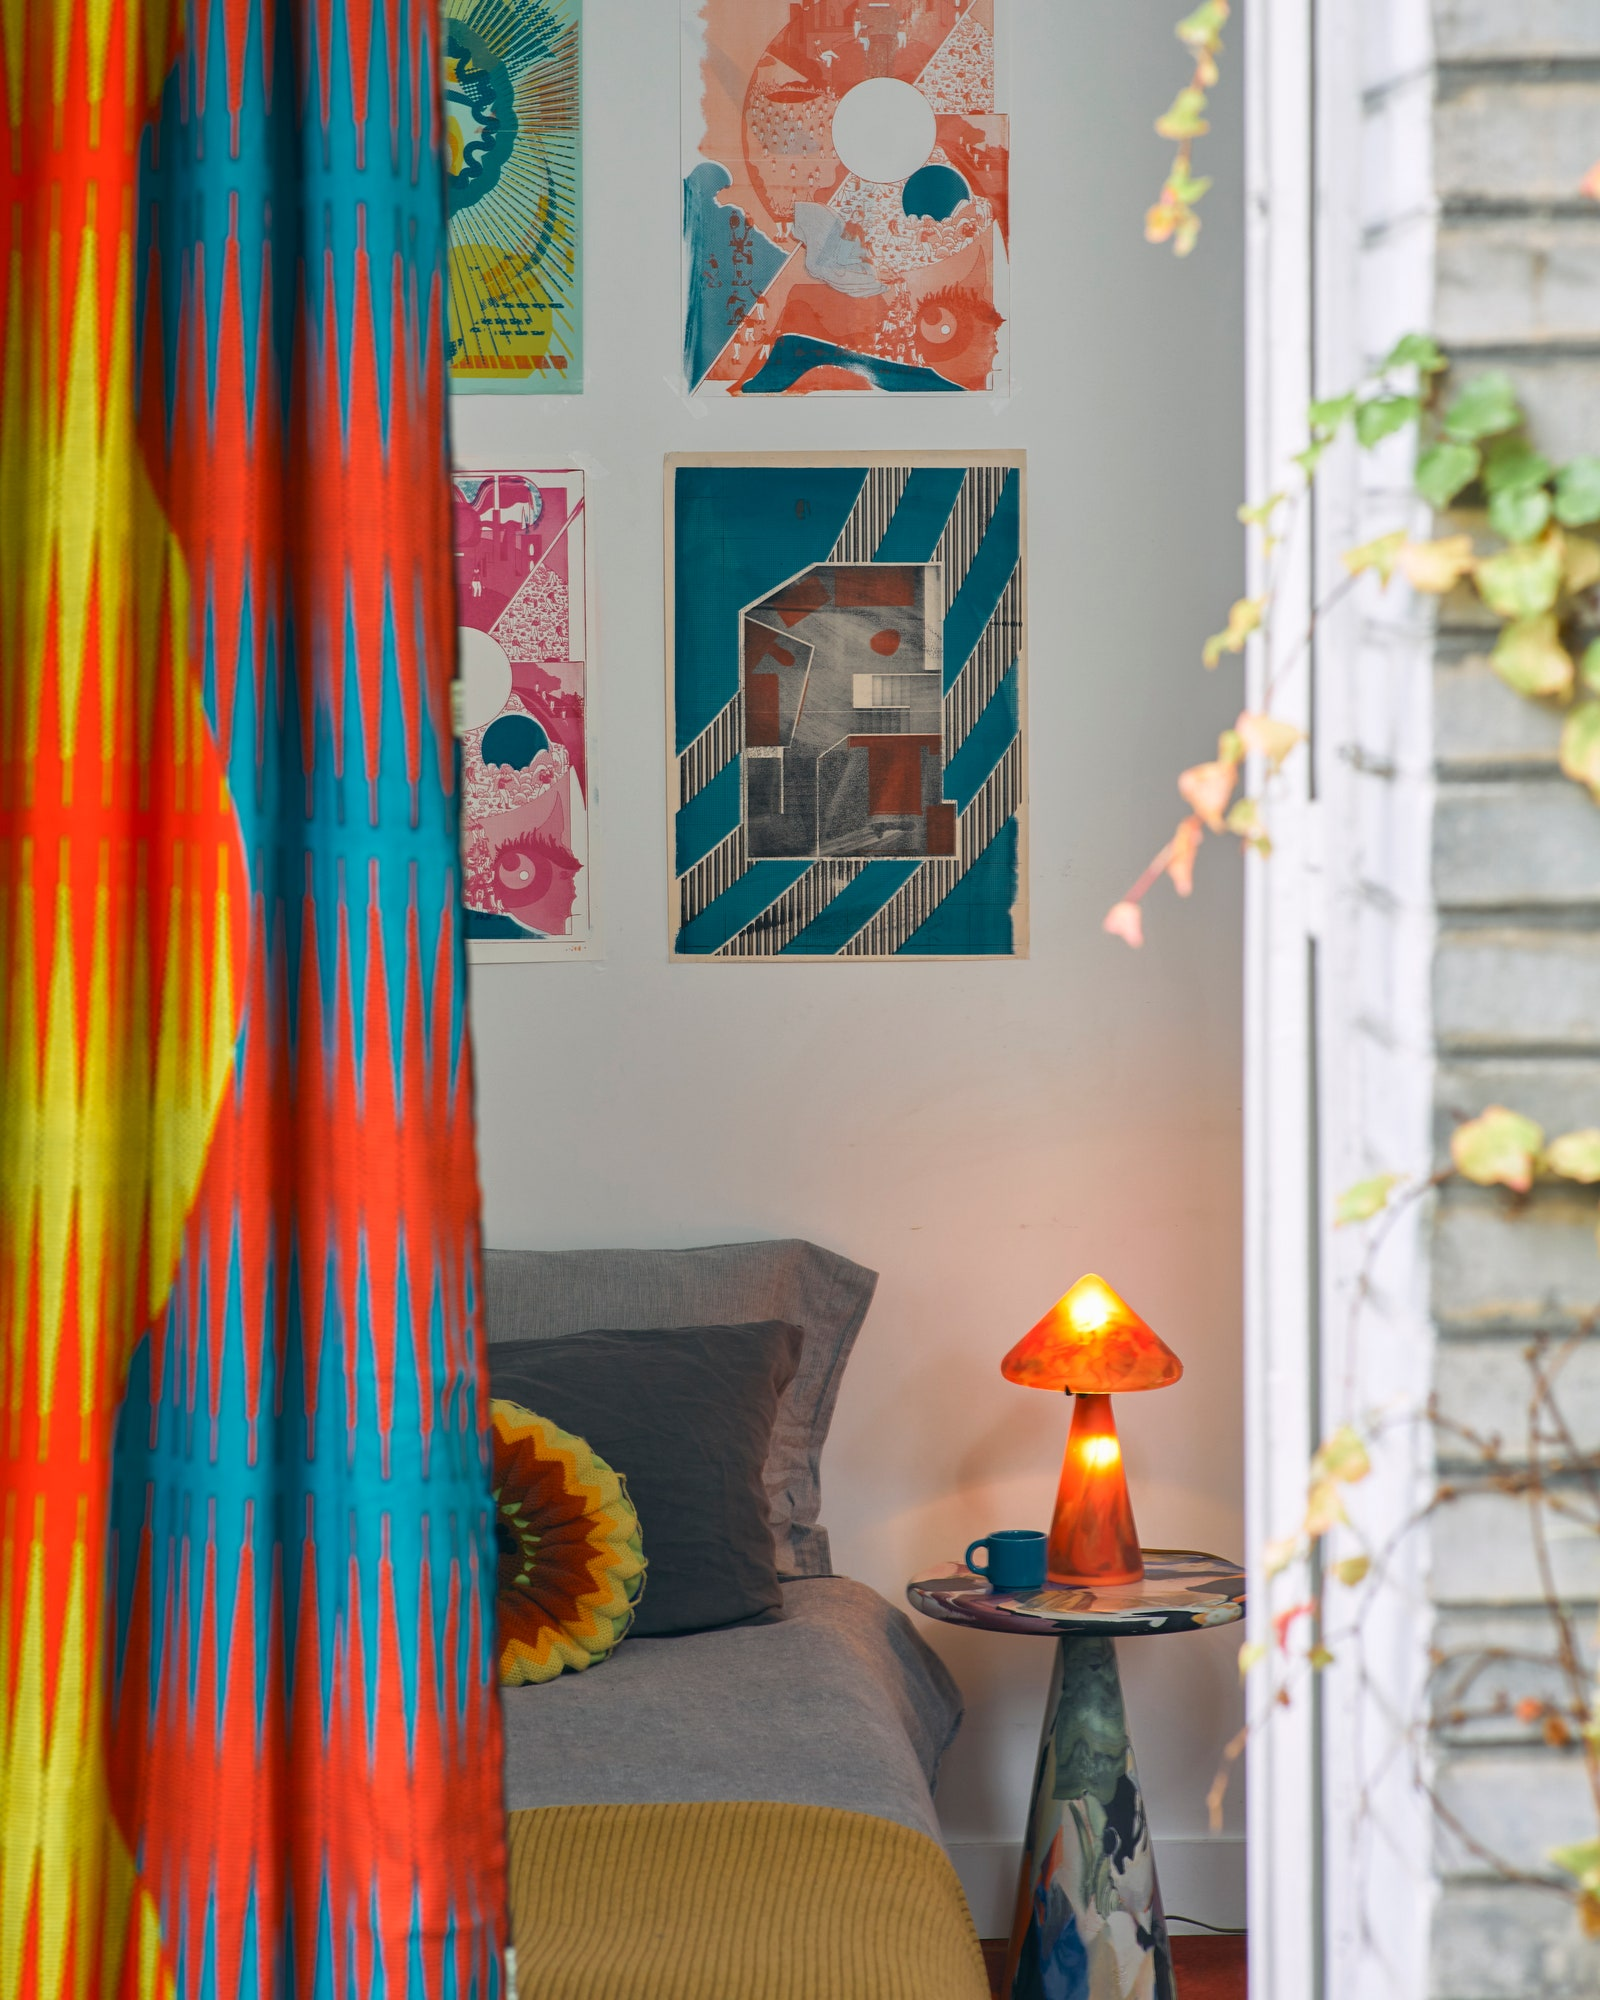 pThe bedroom faces a garden. On the walls are prints by Uchronia a Jean Royre chair an orange lamp in Murano glass and a...